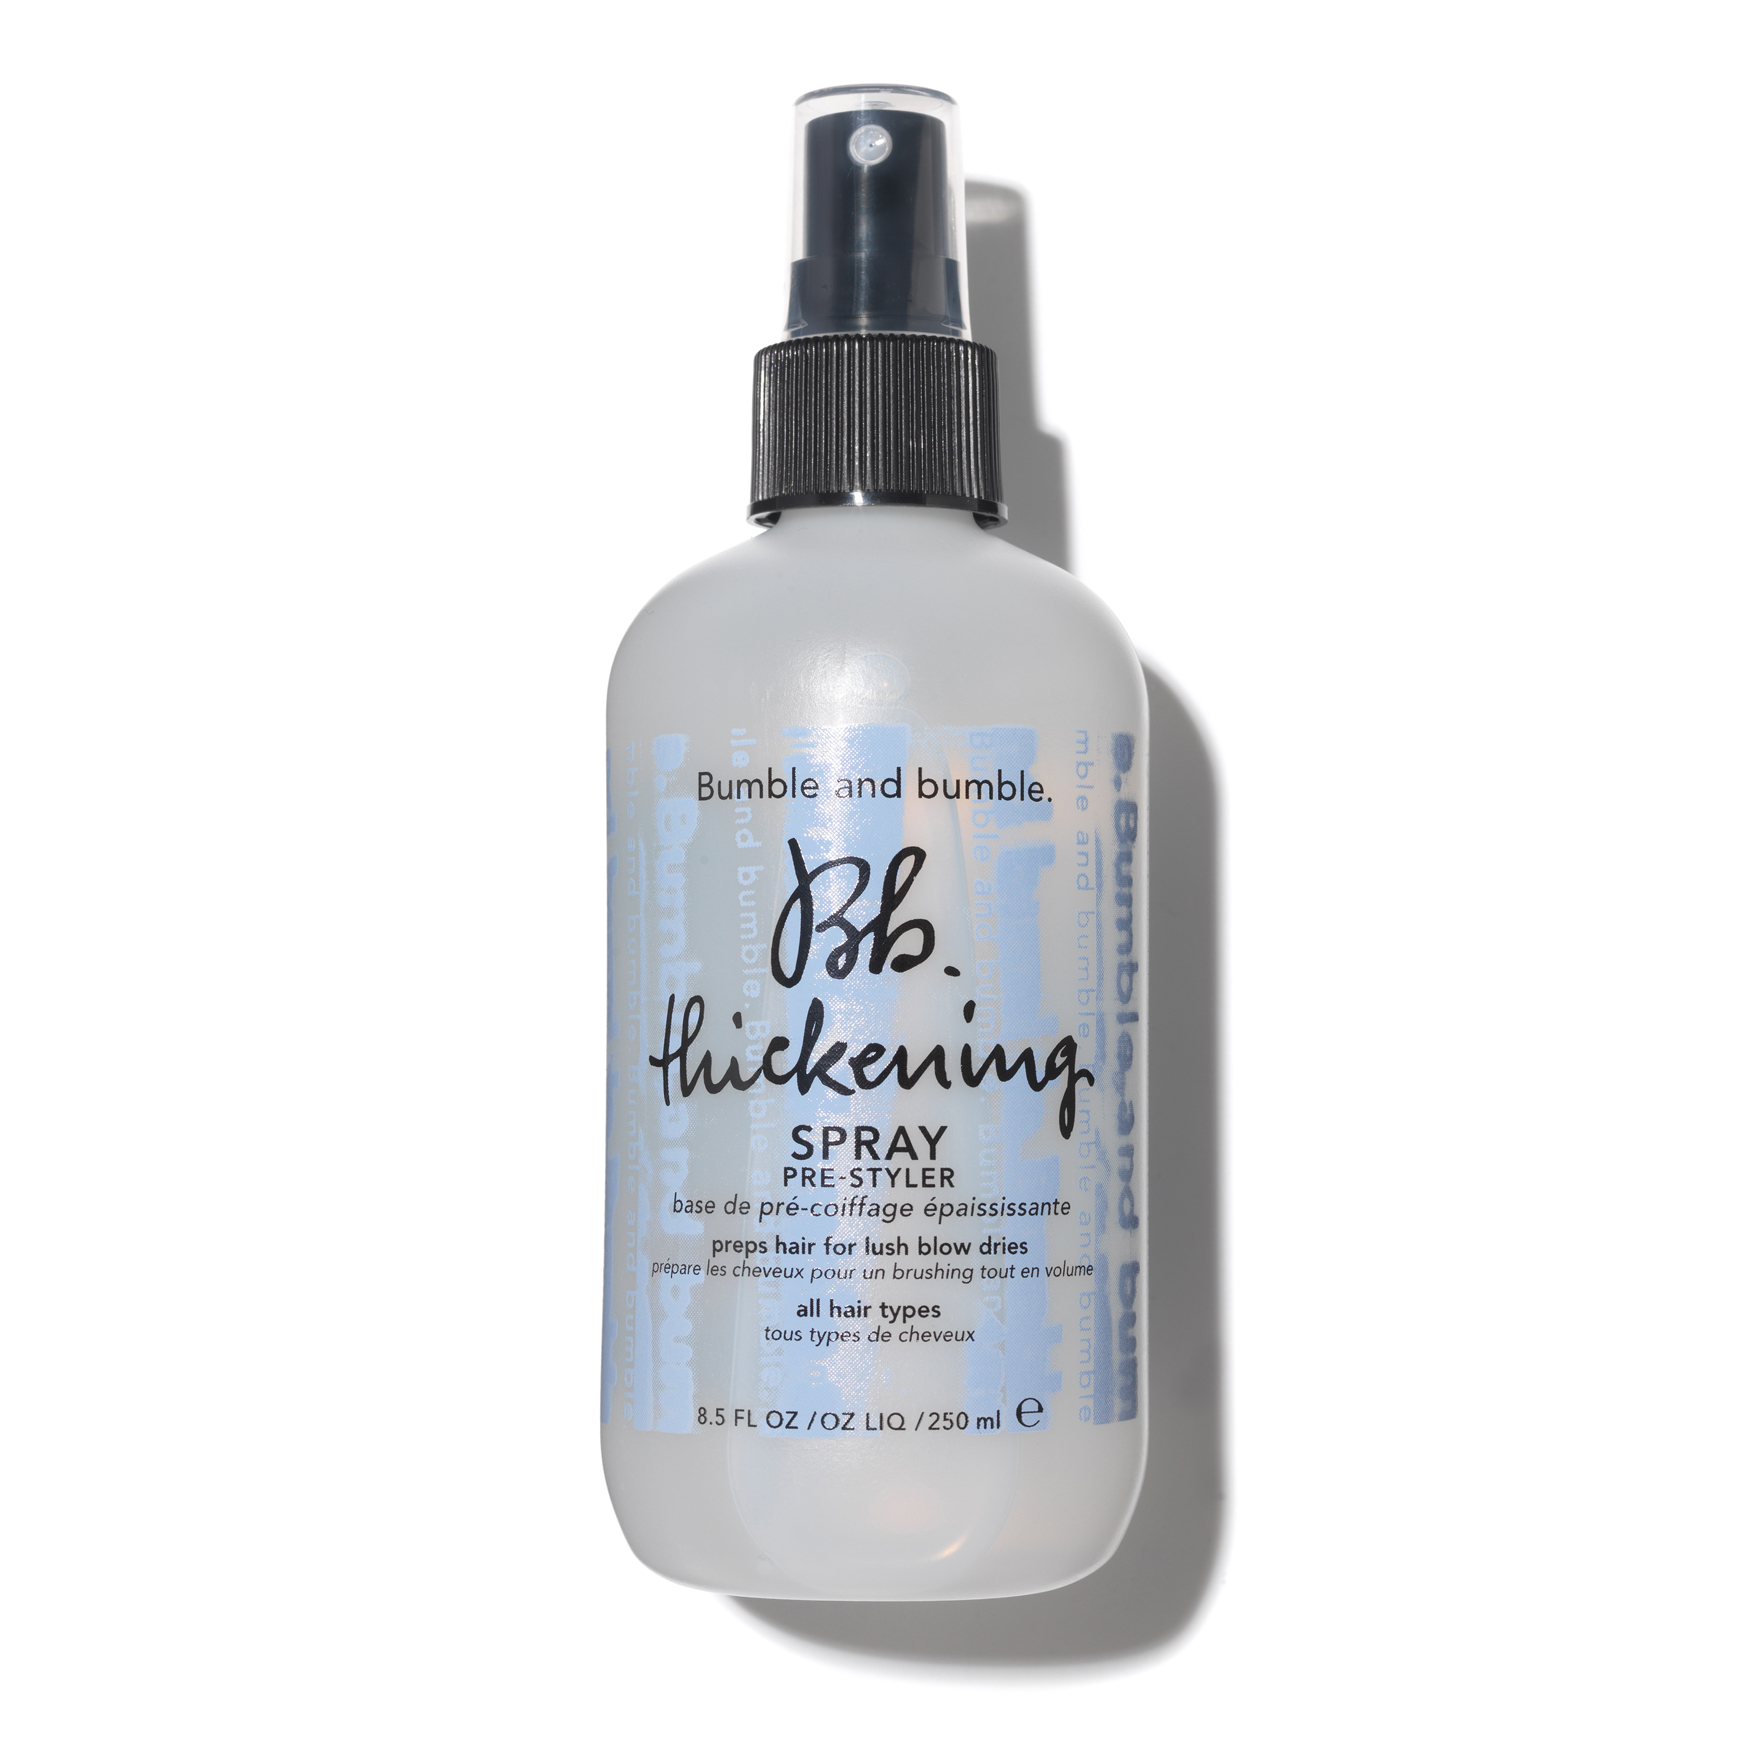 Thickening Spray Bumble And Bumble